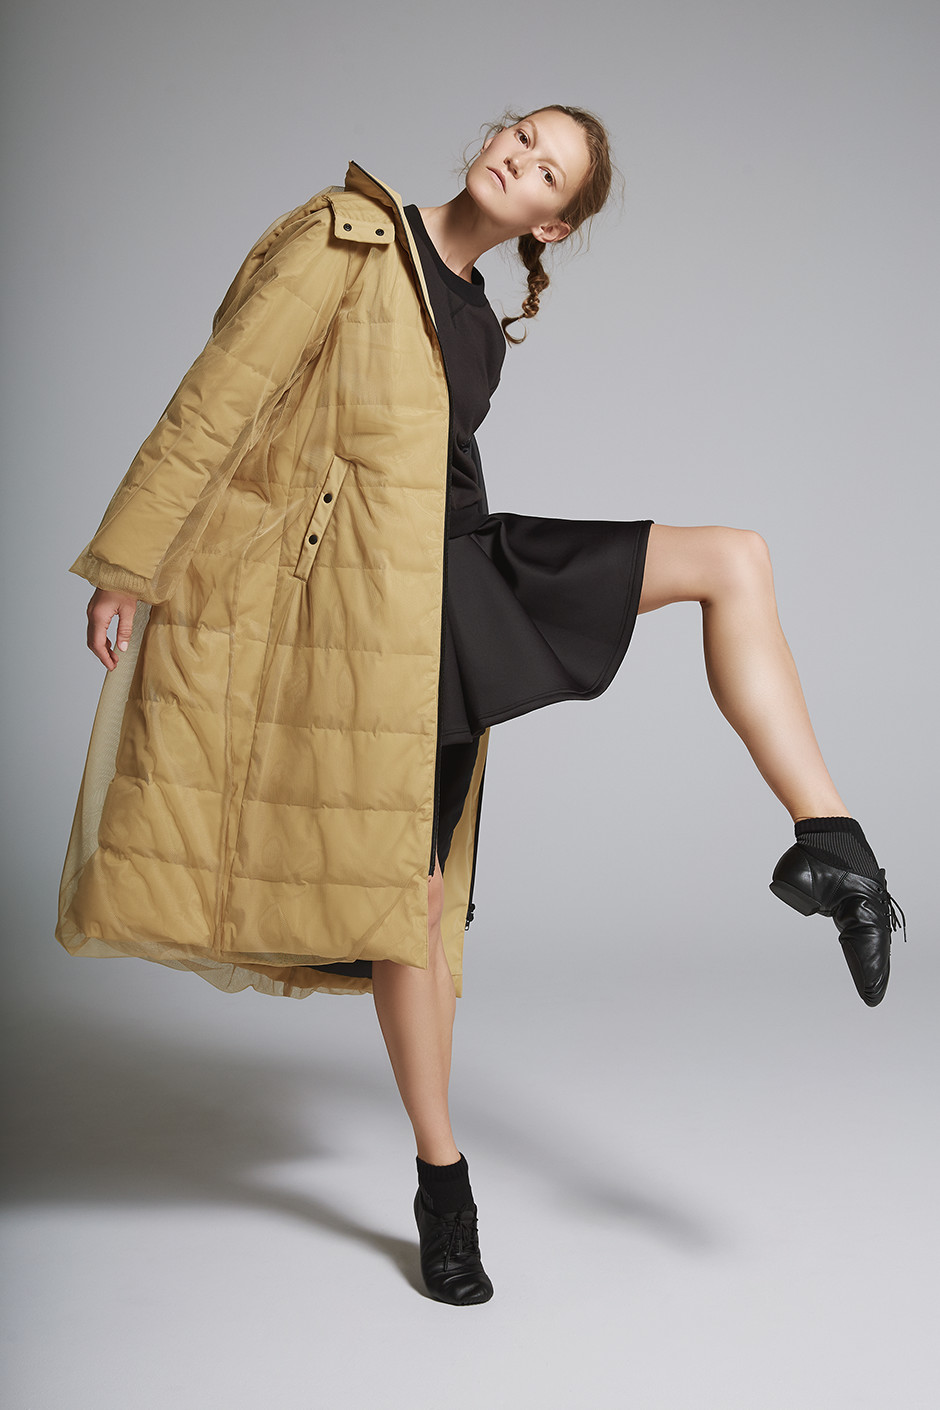 TULLE DOWN COAT DARK3733|SWEAT ONE-PIECE DARK5731